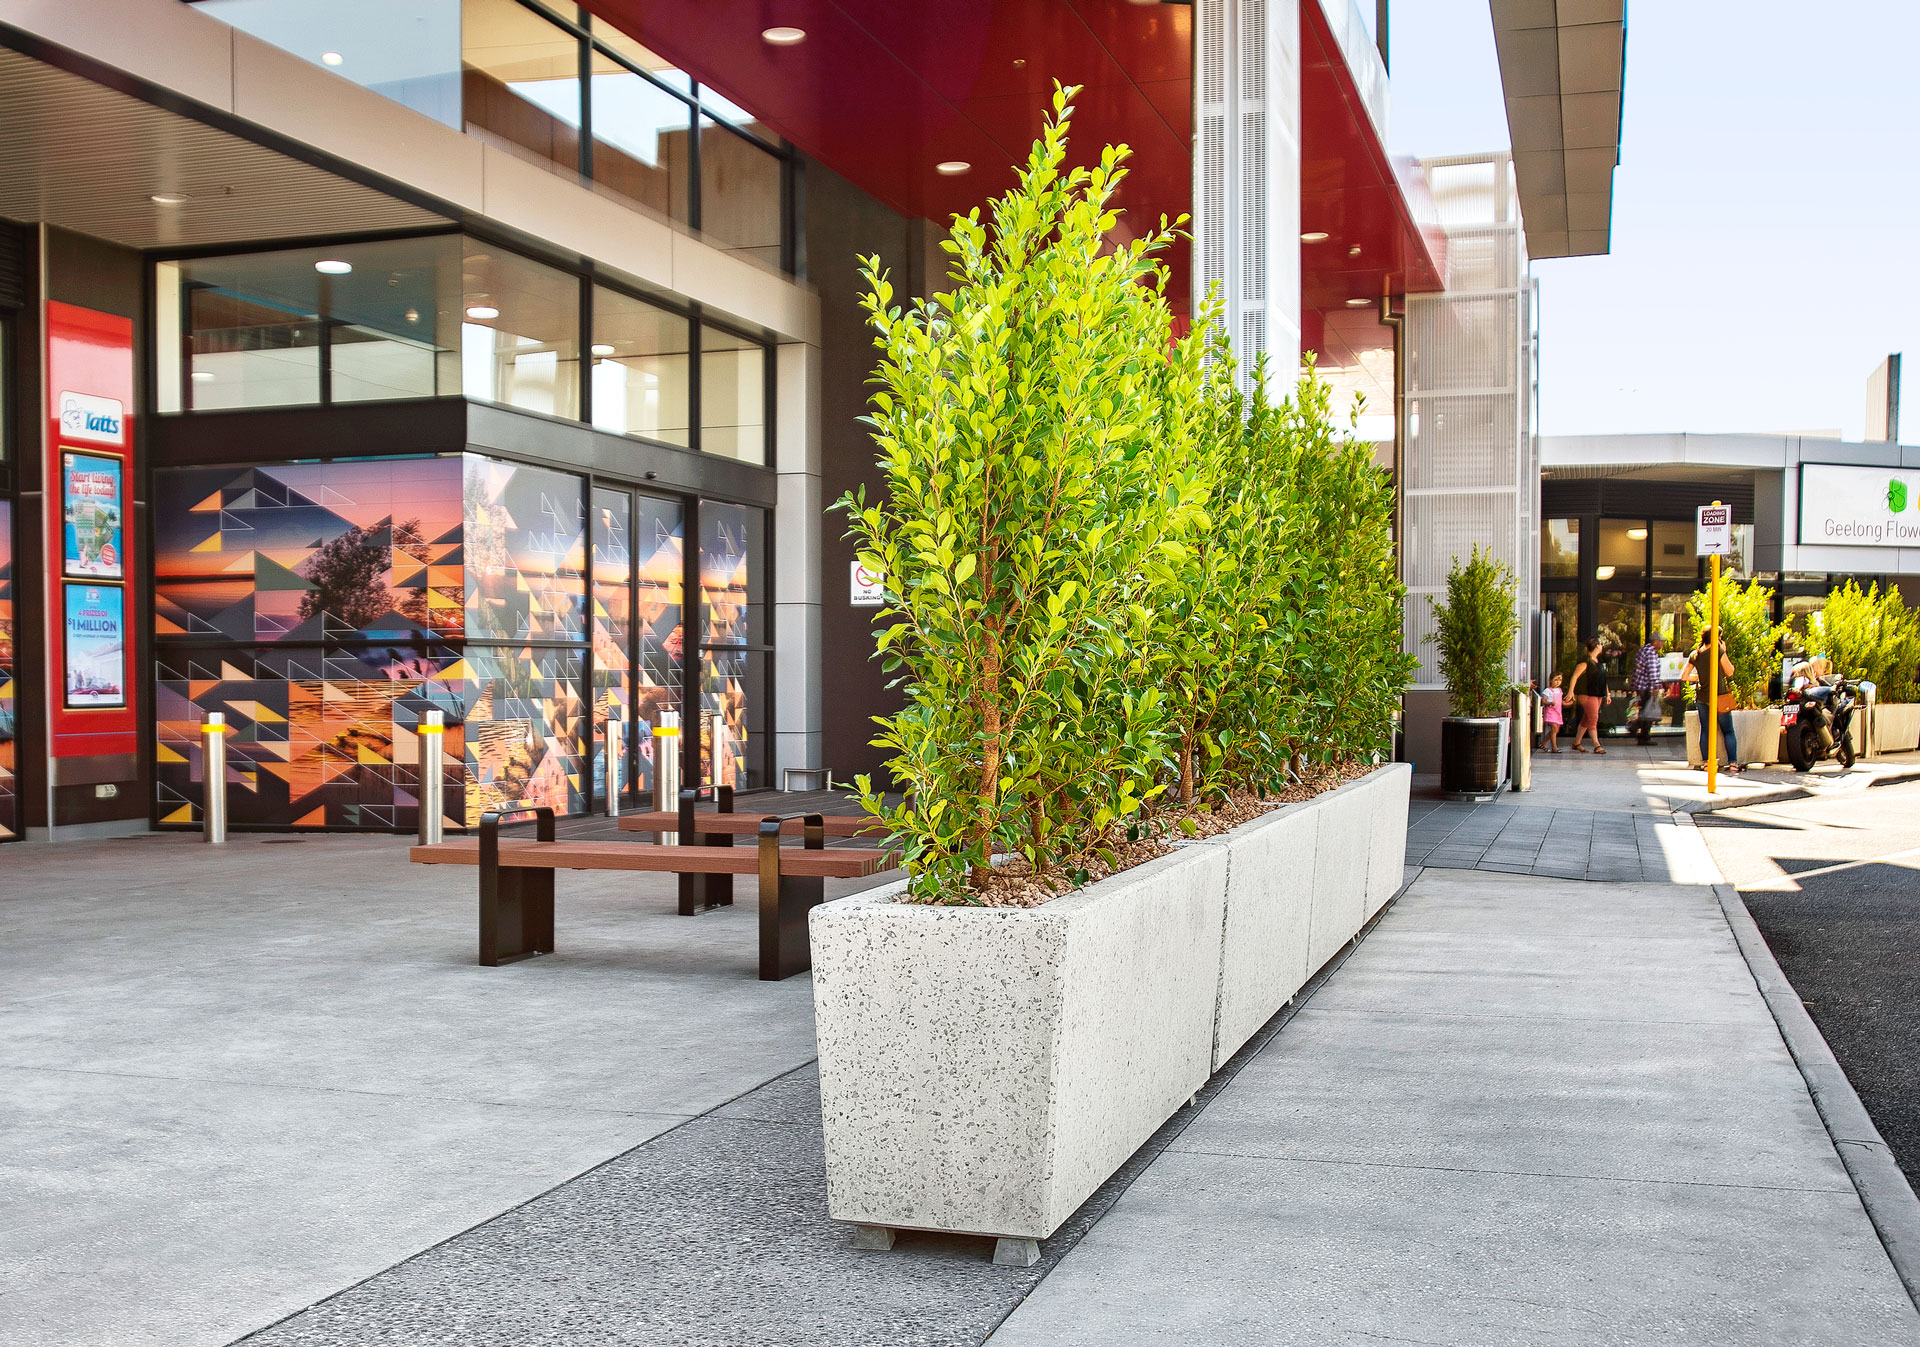 Anston rectangular planters installed outside a shopping centre.